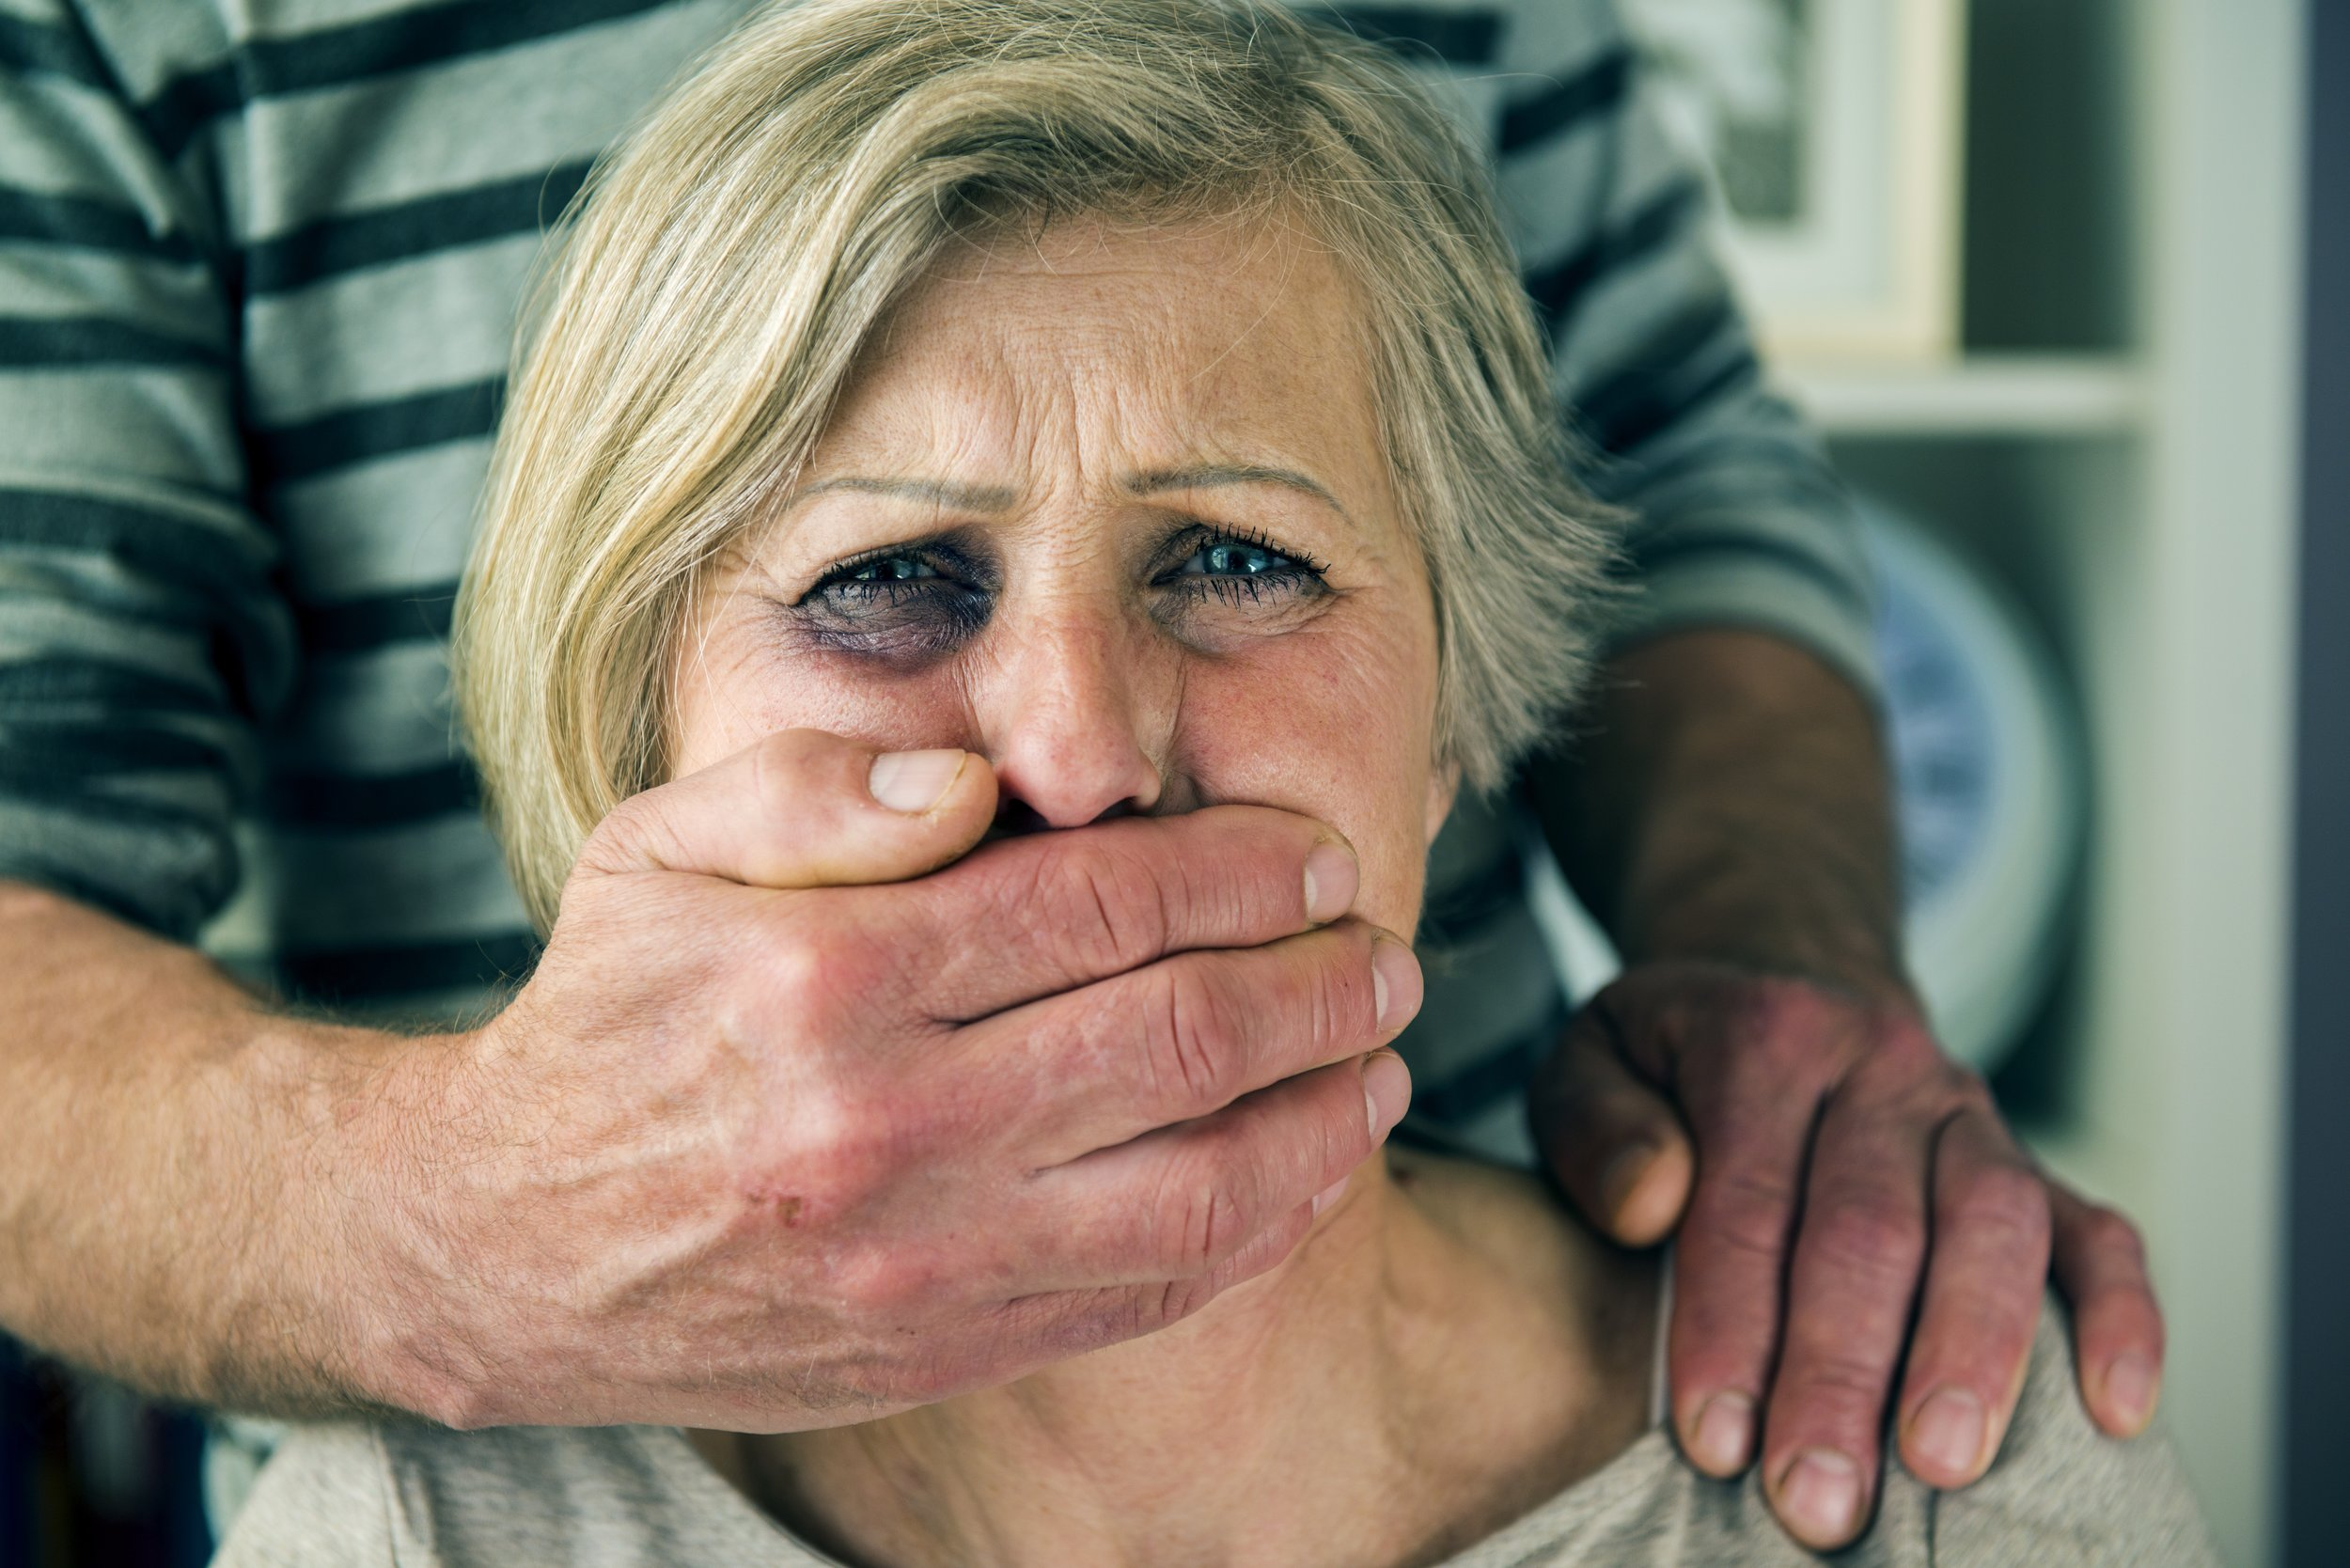 graphicstock-portrait-of-woman-victim-of-domestic-violence-man-abusing-senior-woman-with-black-eye_HRlxkbG3-Z.jpg